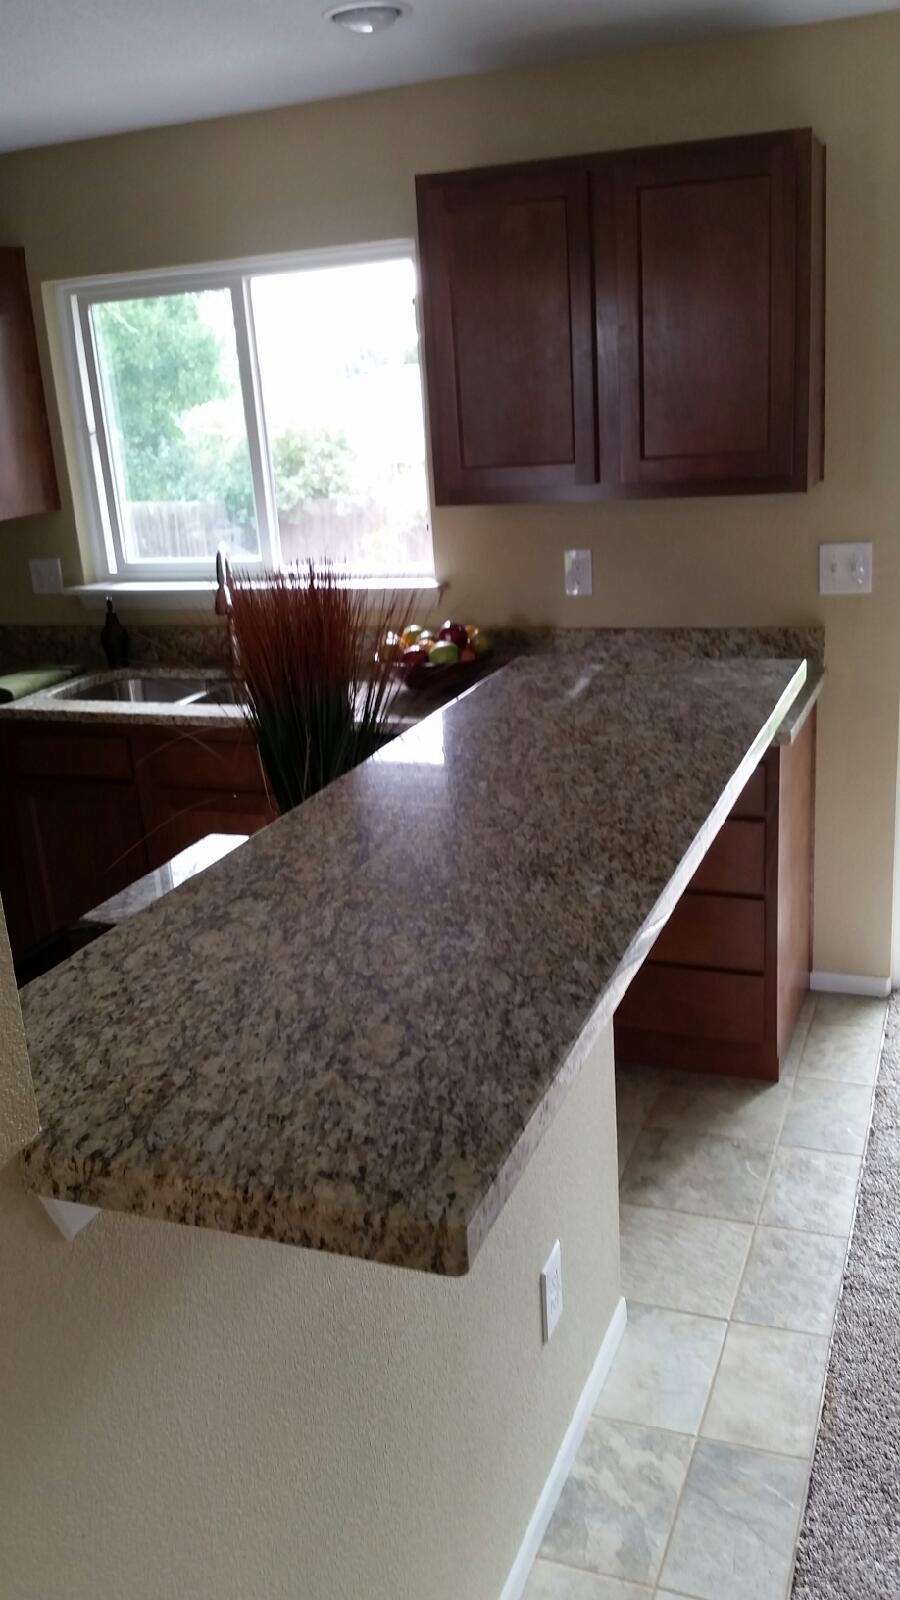 myhouseofgranite_my_house_of_granite_finished_homes_9_2014_001.jpeg